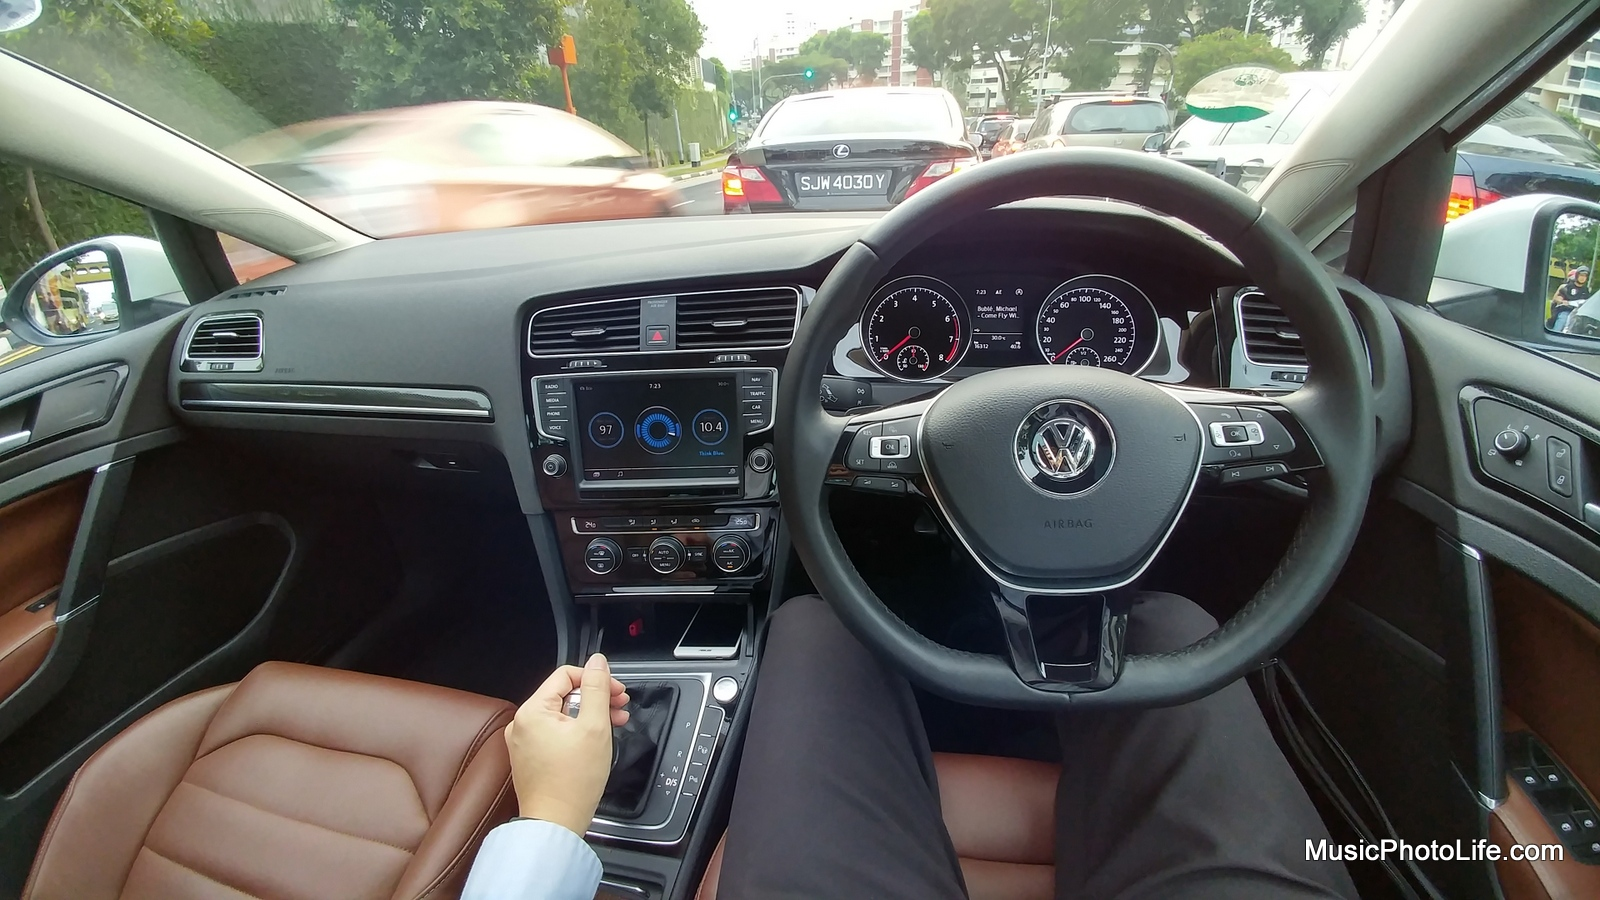 Volkswagen Golf Variant interior view - review by musicphotolife.com